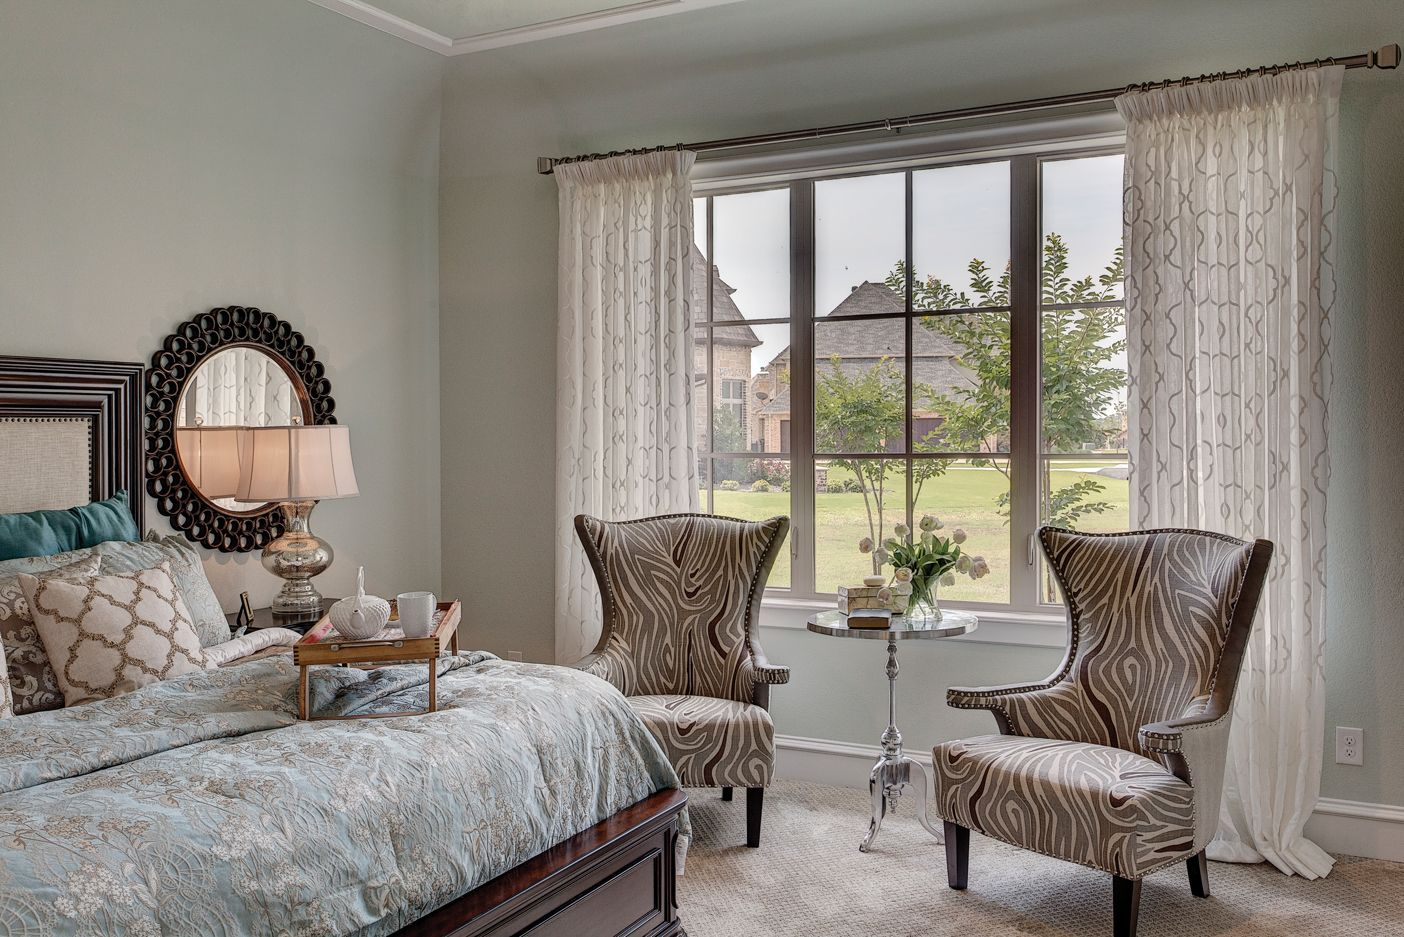 Slim Profile Windows With Grids Pair Light Curtains For A Contemporary Bedroom Design